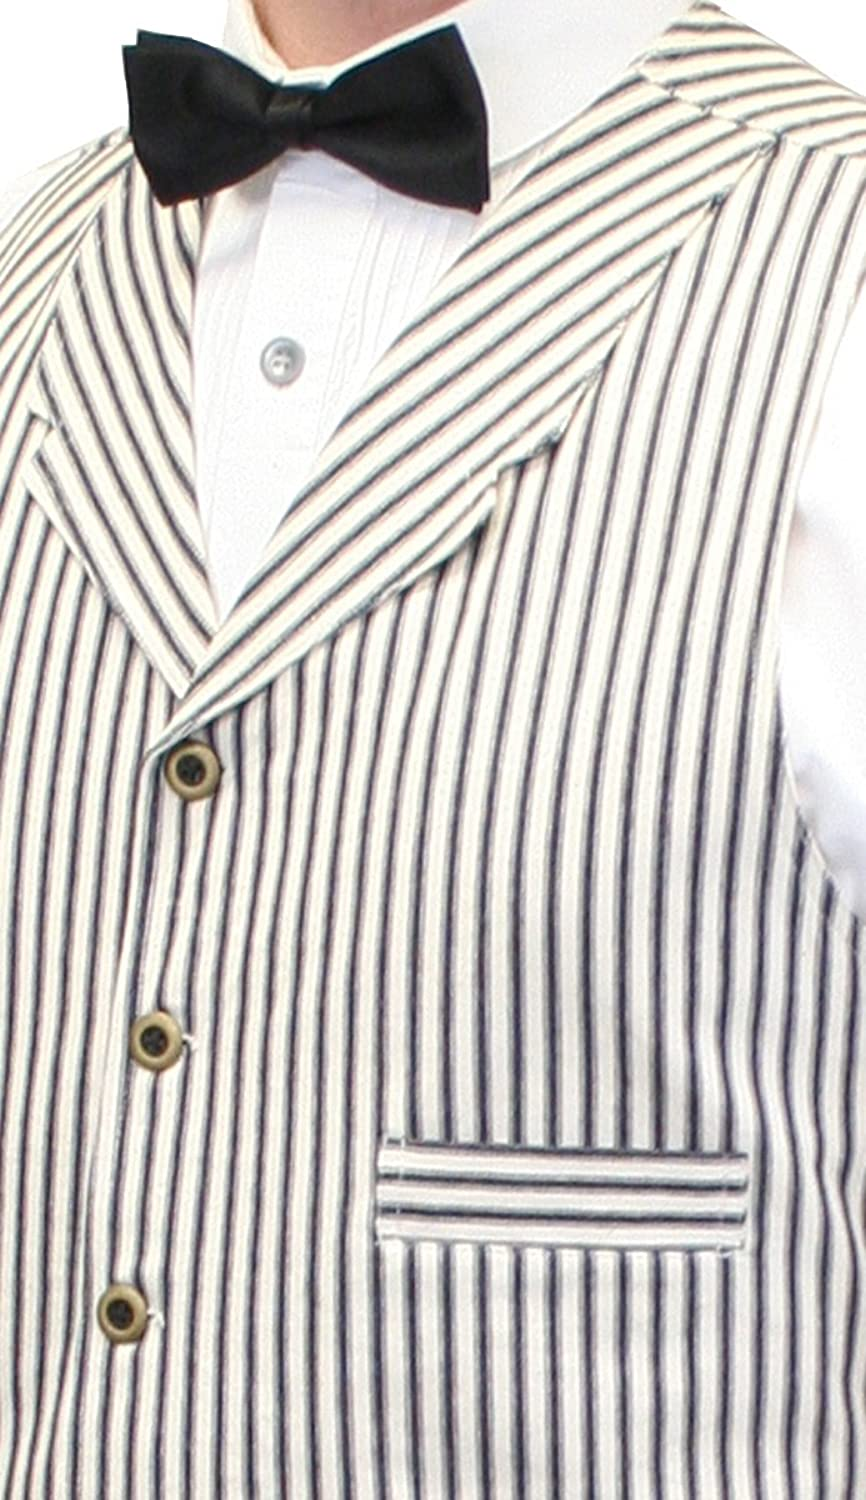 1900s Edwardian Men's Suits and Coats Historical Emporium Mens Summerhill Cotton Striped Dress Vest $59.95 AT vintagedancer.com